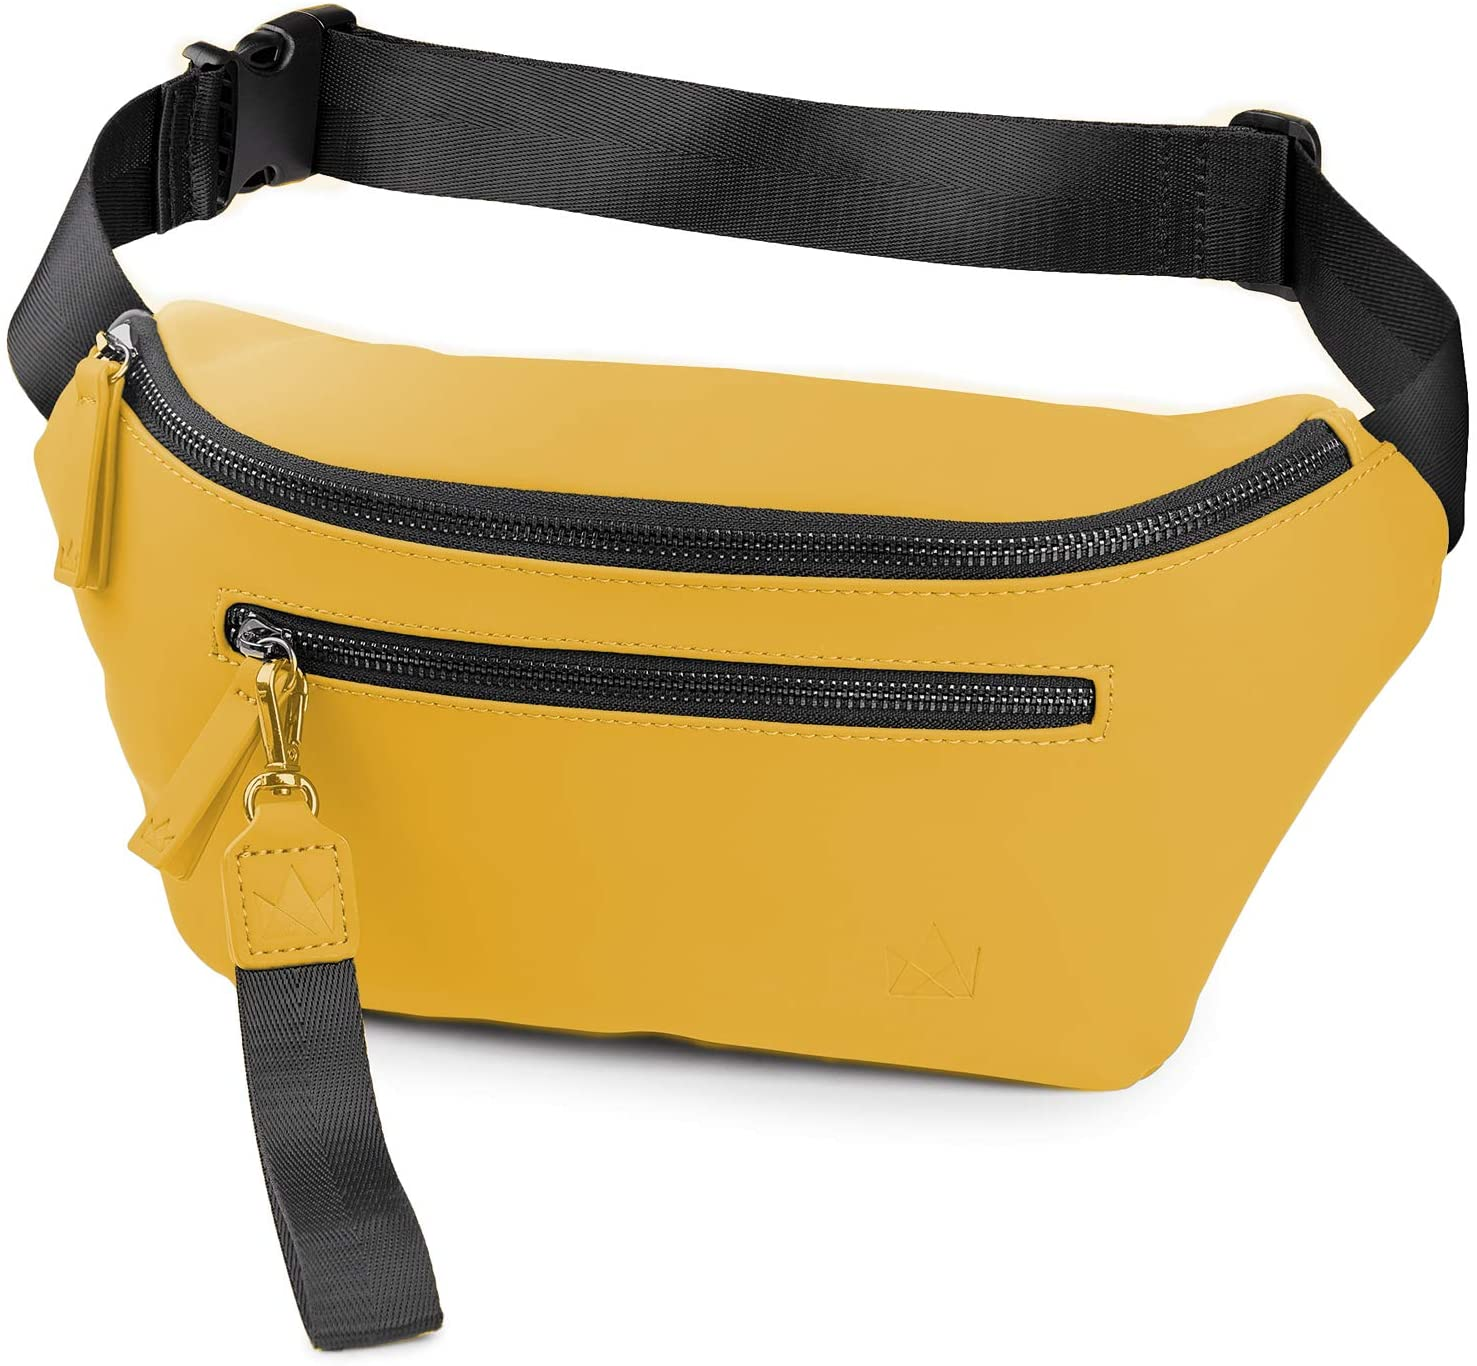 The Friendly Swede Fanny Pack for Men and Women - Fashion Crossbody Bag - Waist Bag Travel Pouch, VRETA (Matte Yellow)